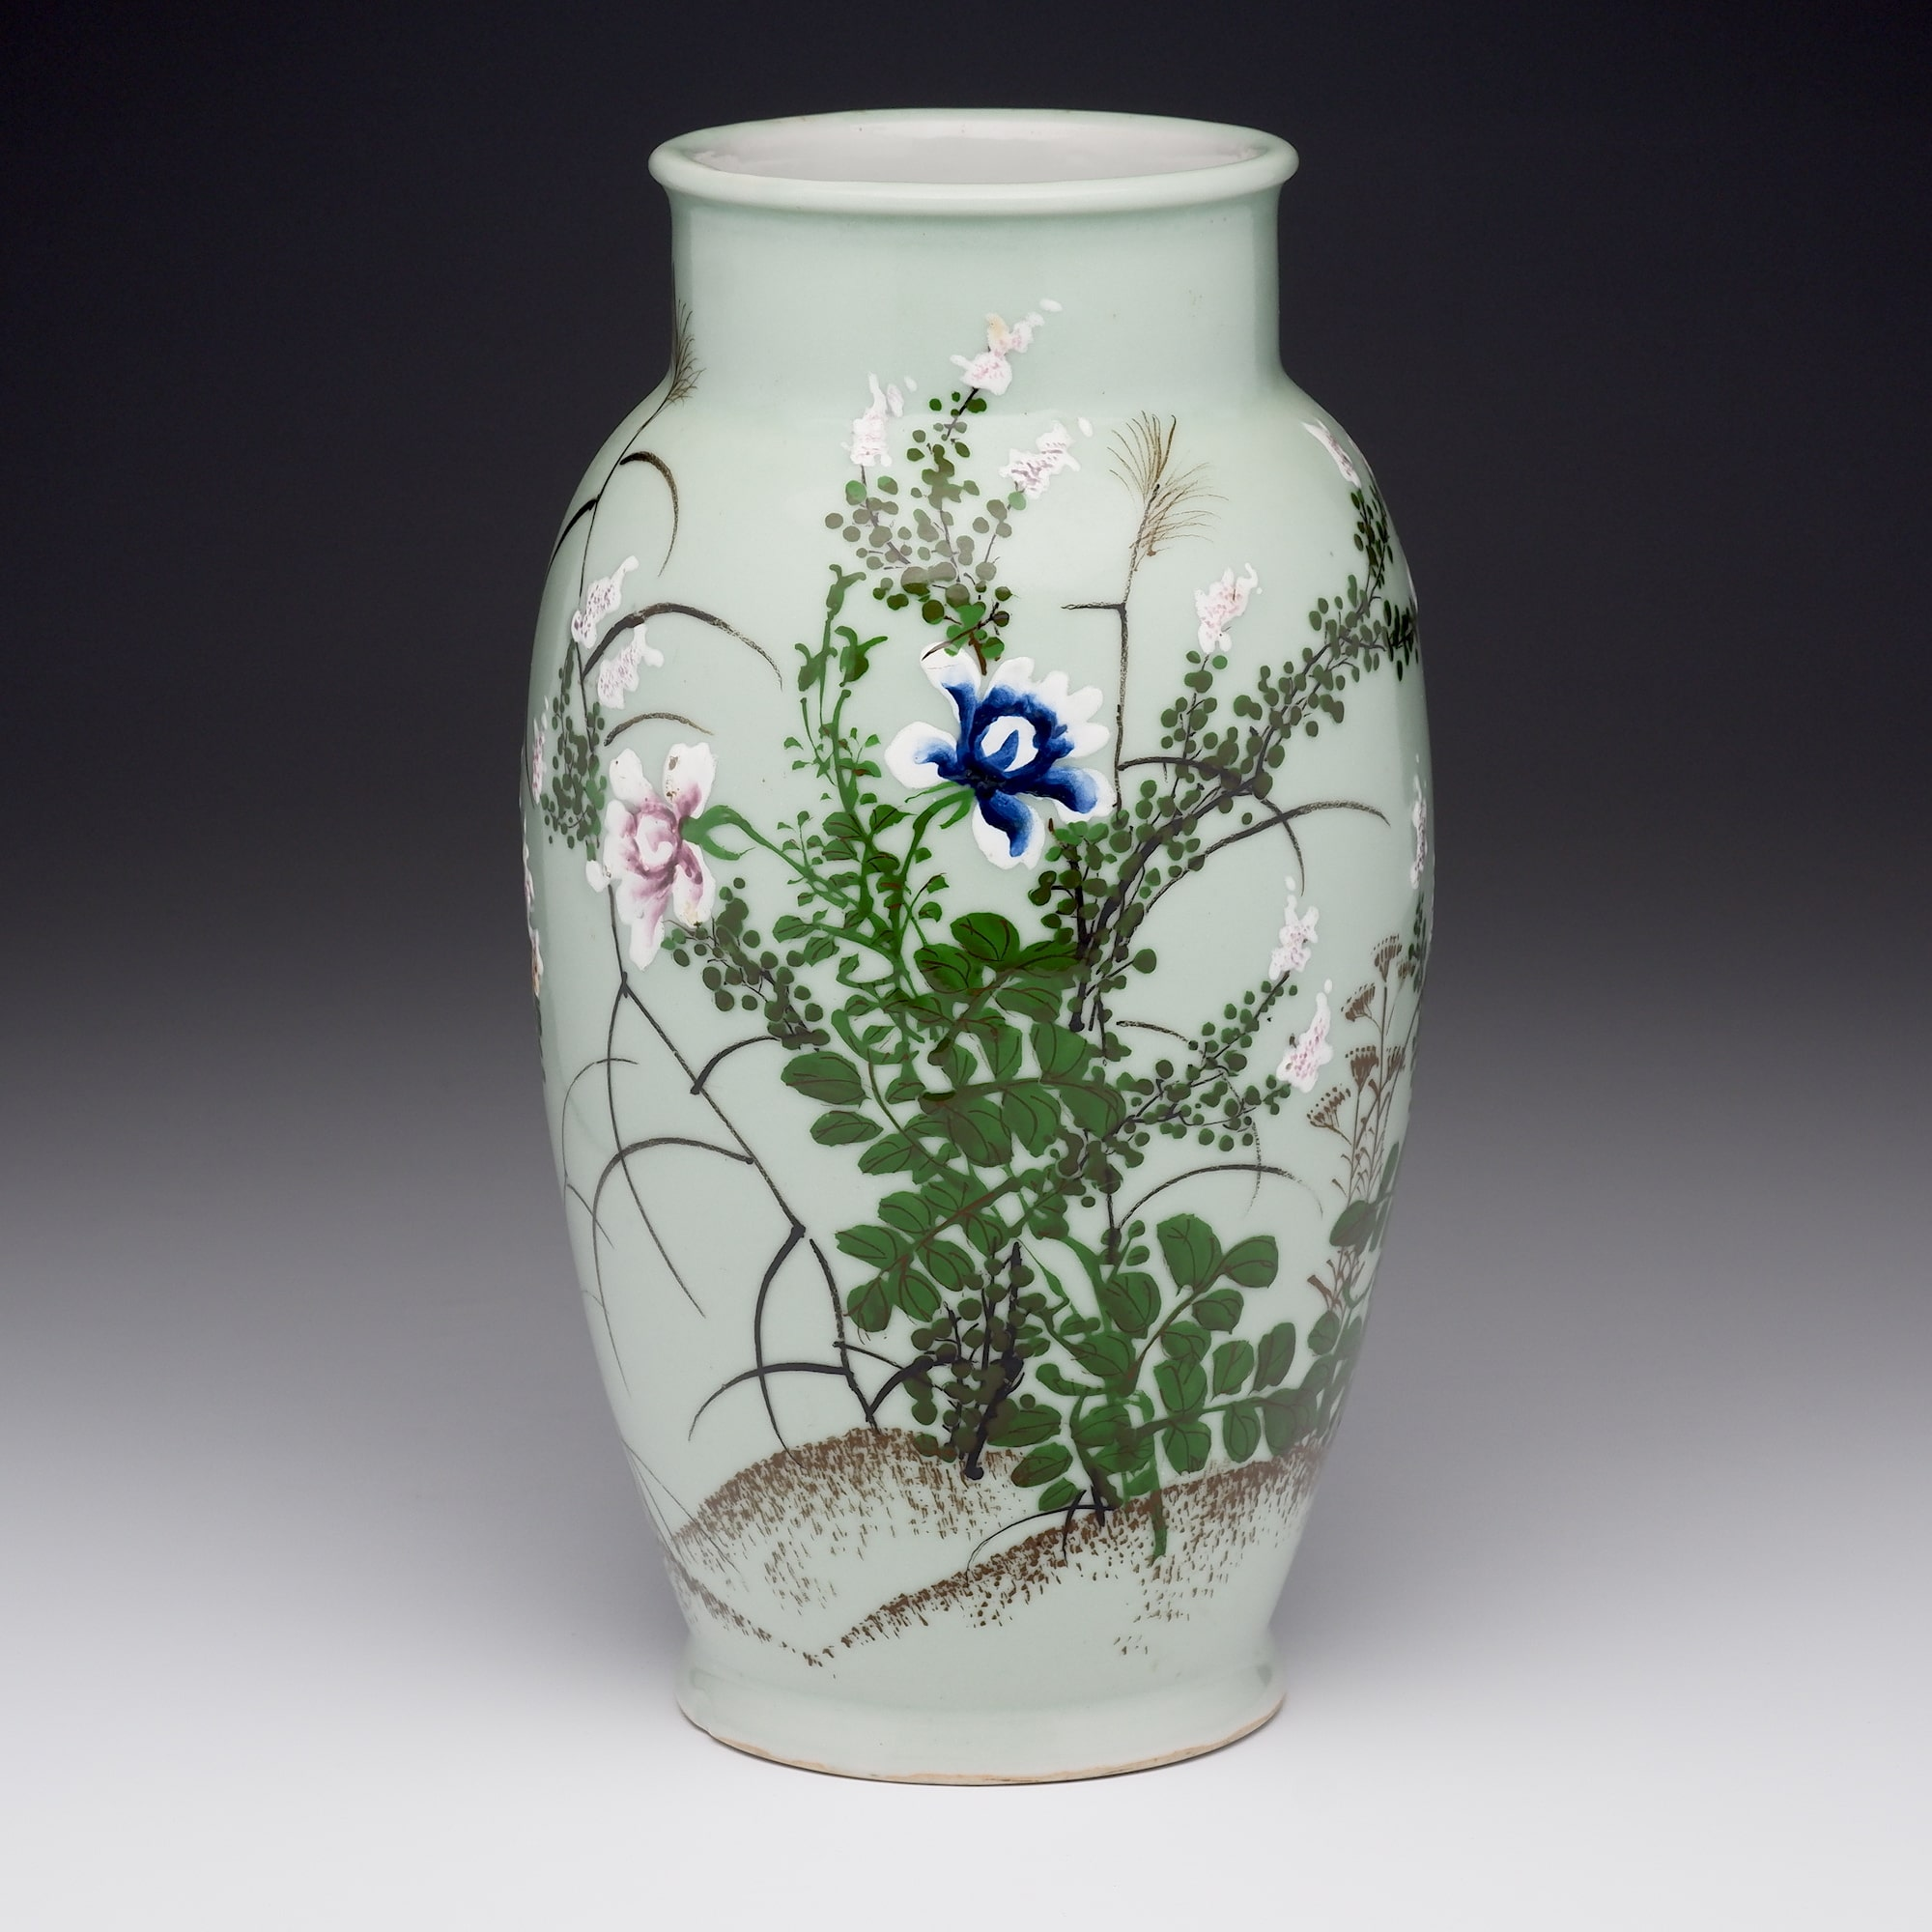 'Chinese Celadon Ground and Slip Decorated Vase, Early 20th Century'